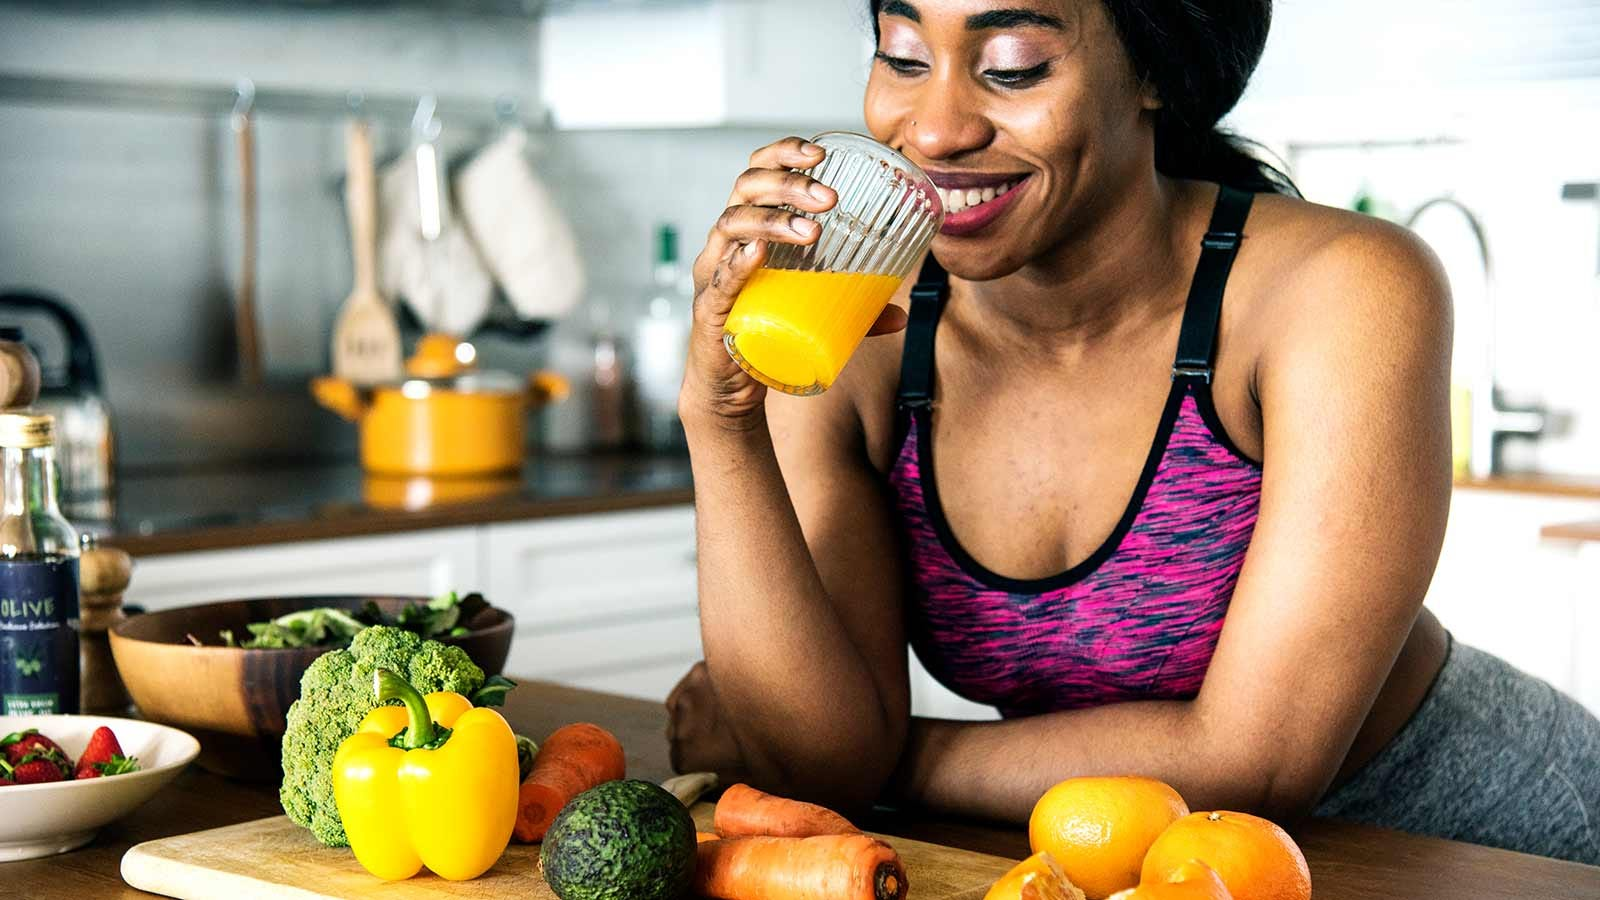 A woman drinking fresh orange juice while leaning on a counter loaded with fresh produce.